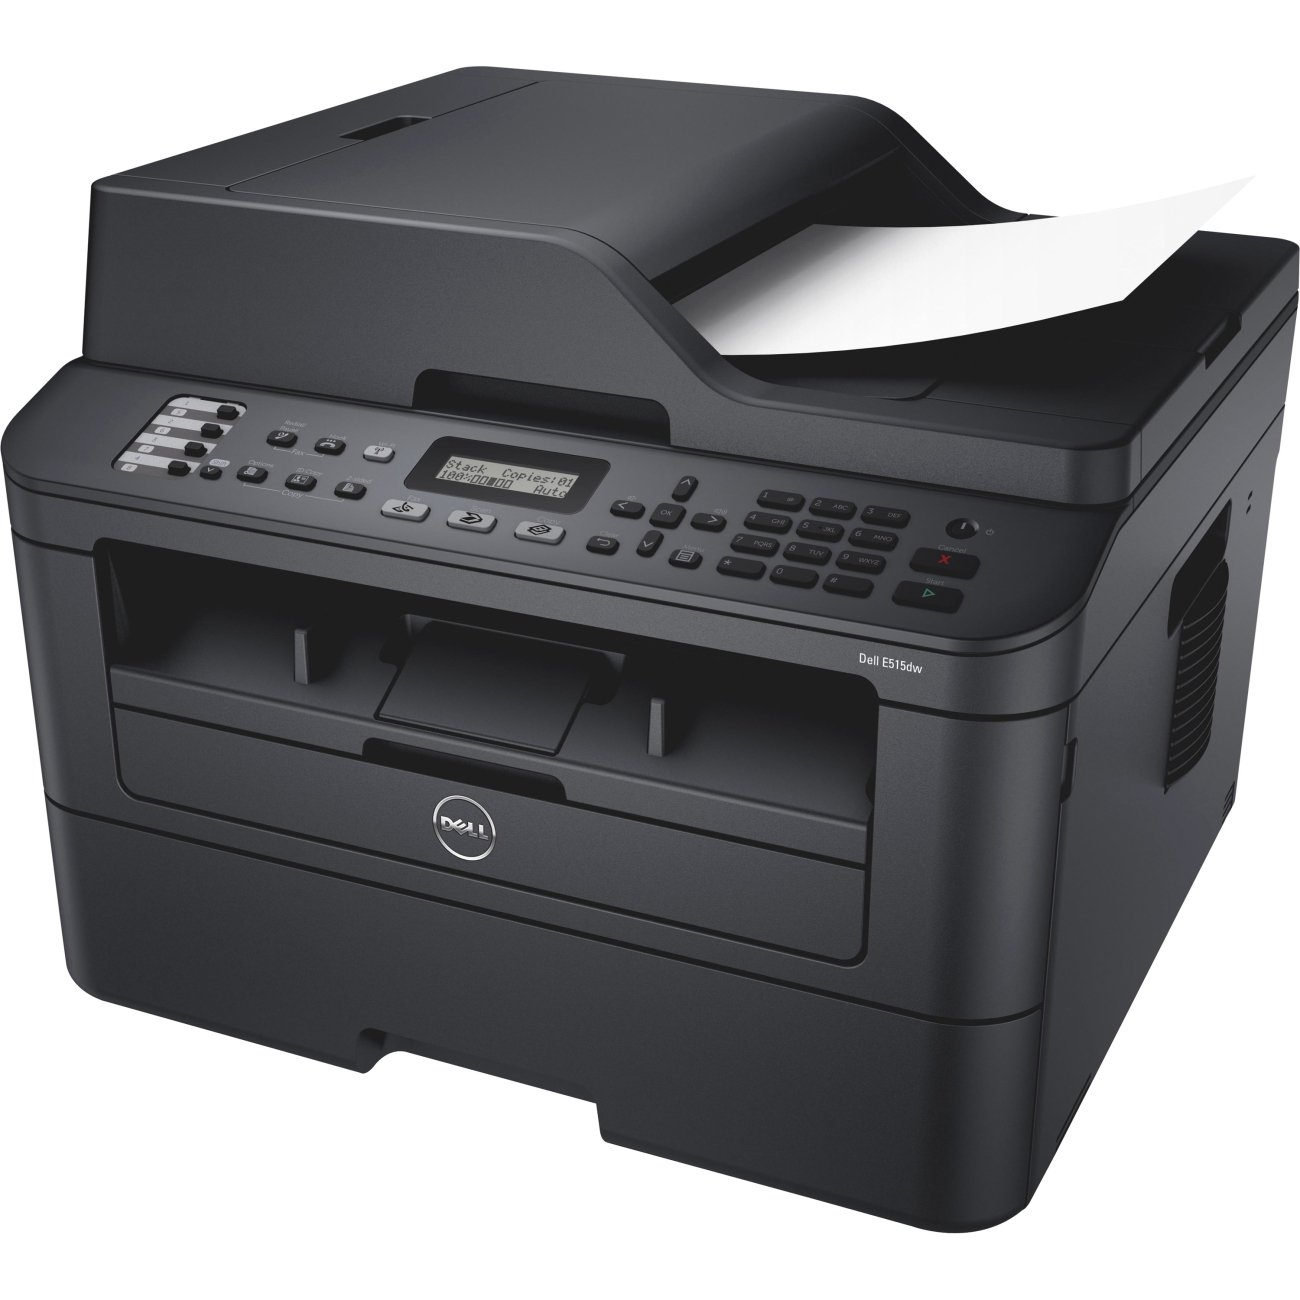 Dell E515DW Wireless Monochrome Printer with Scanner Copier & Fax Dell Marketing USA LP